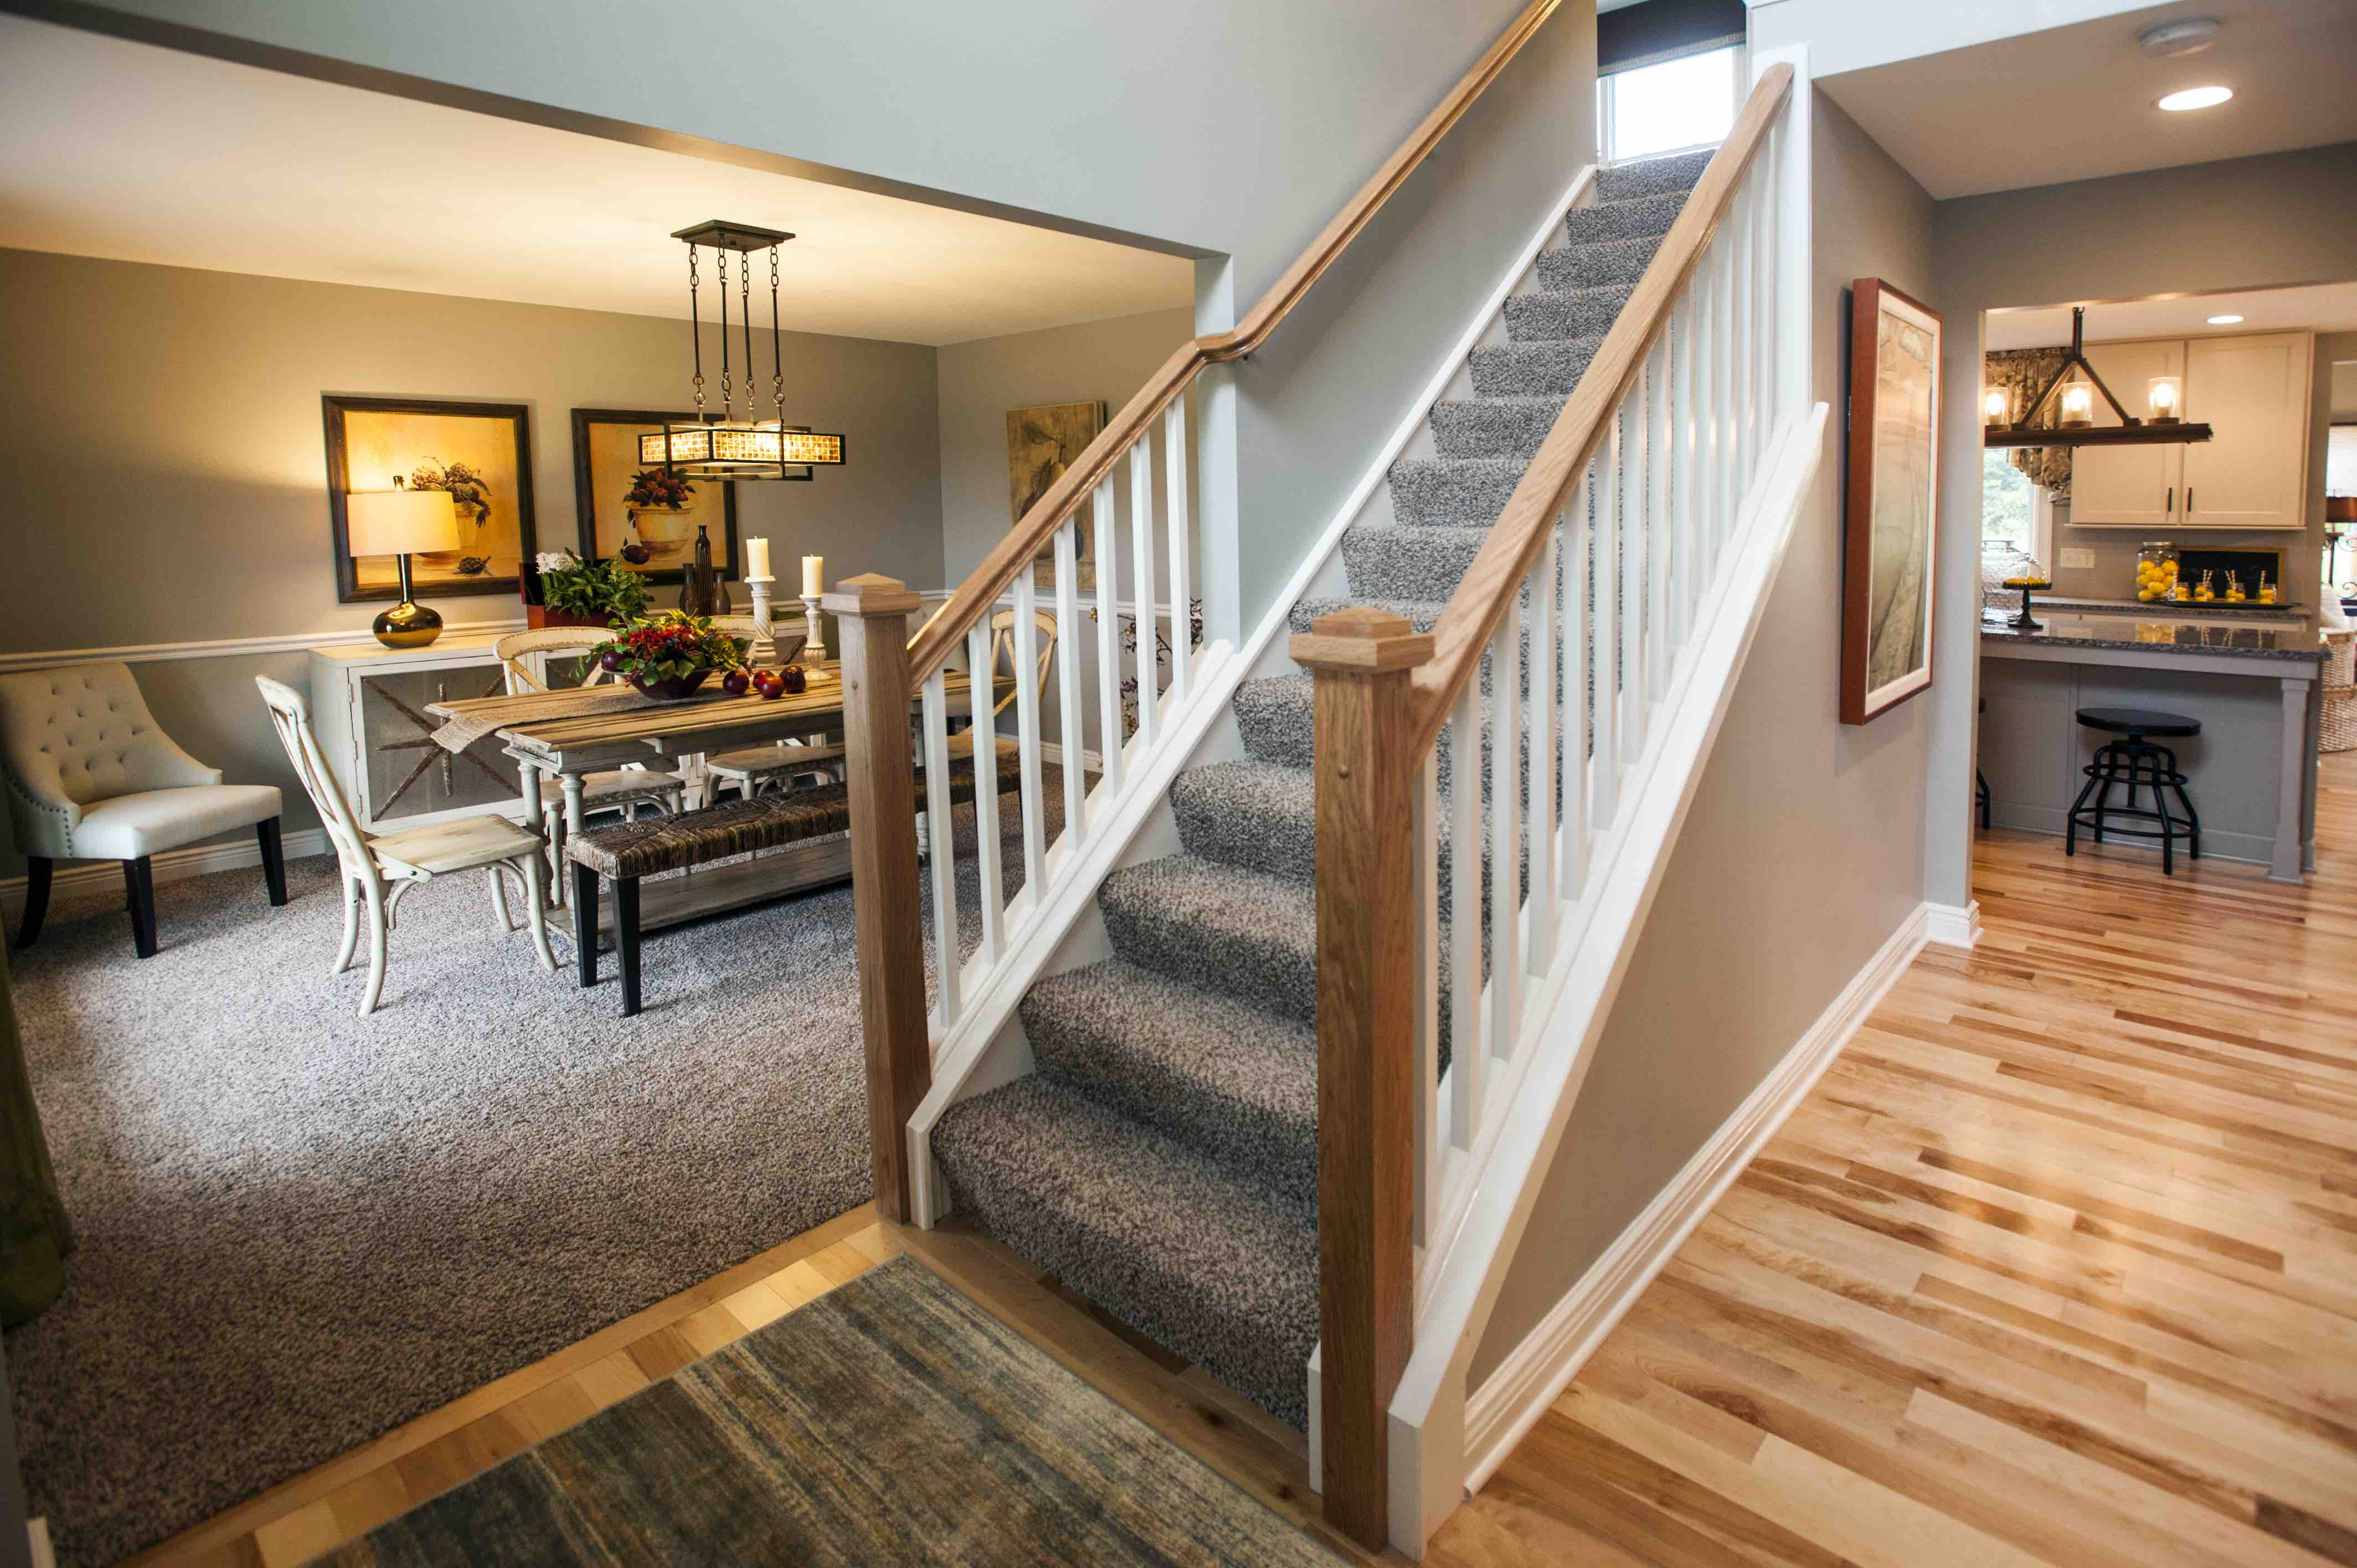 Featured home: marrano grand opens newest craftsman design ...